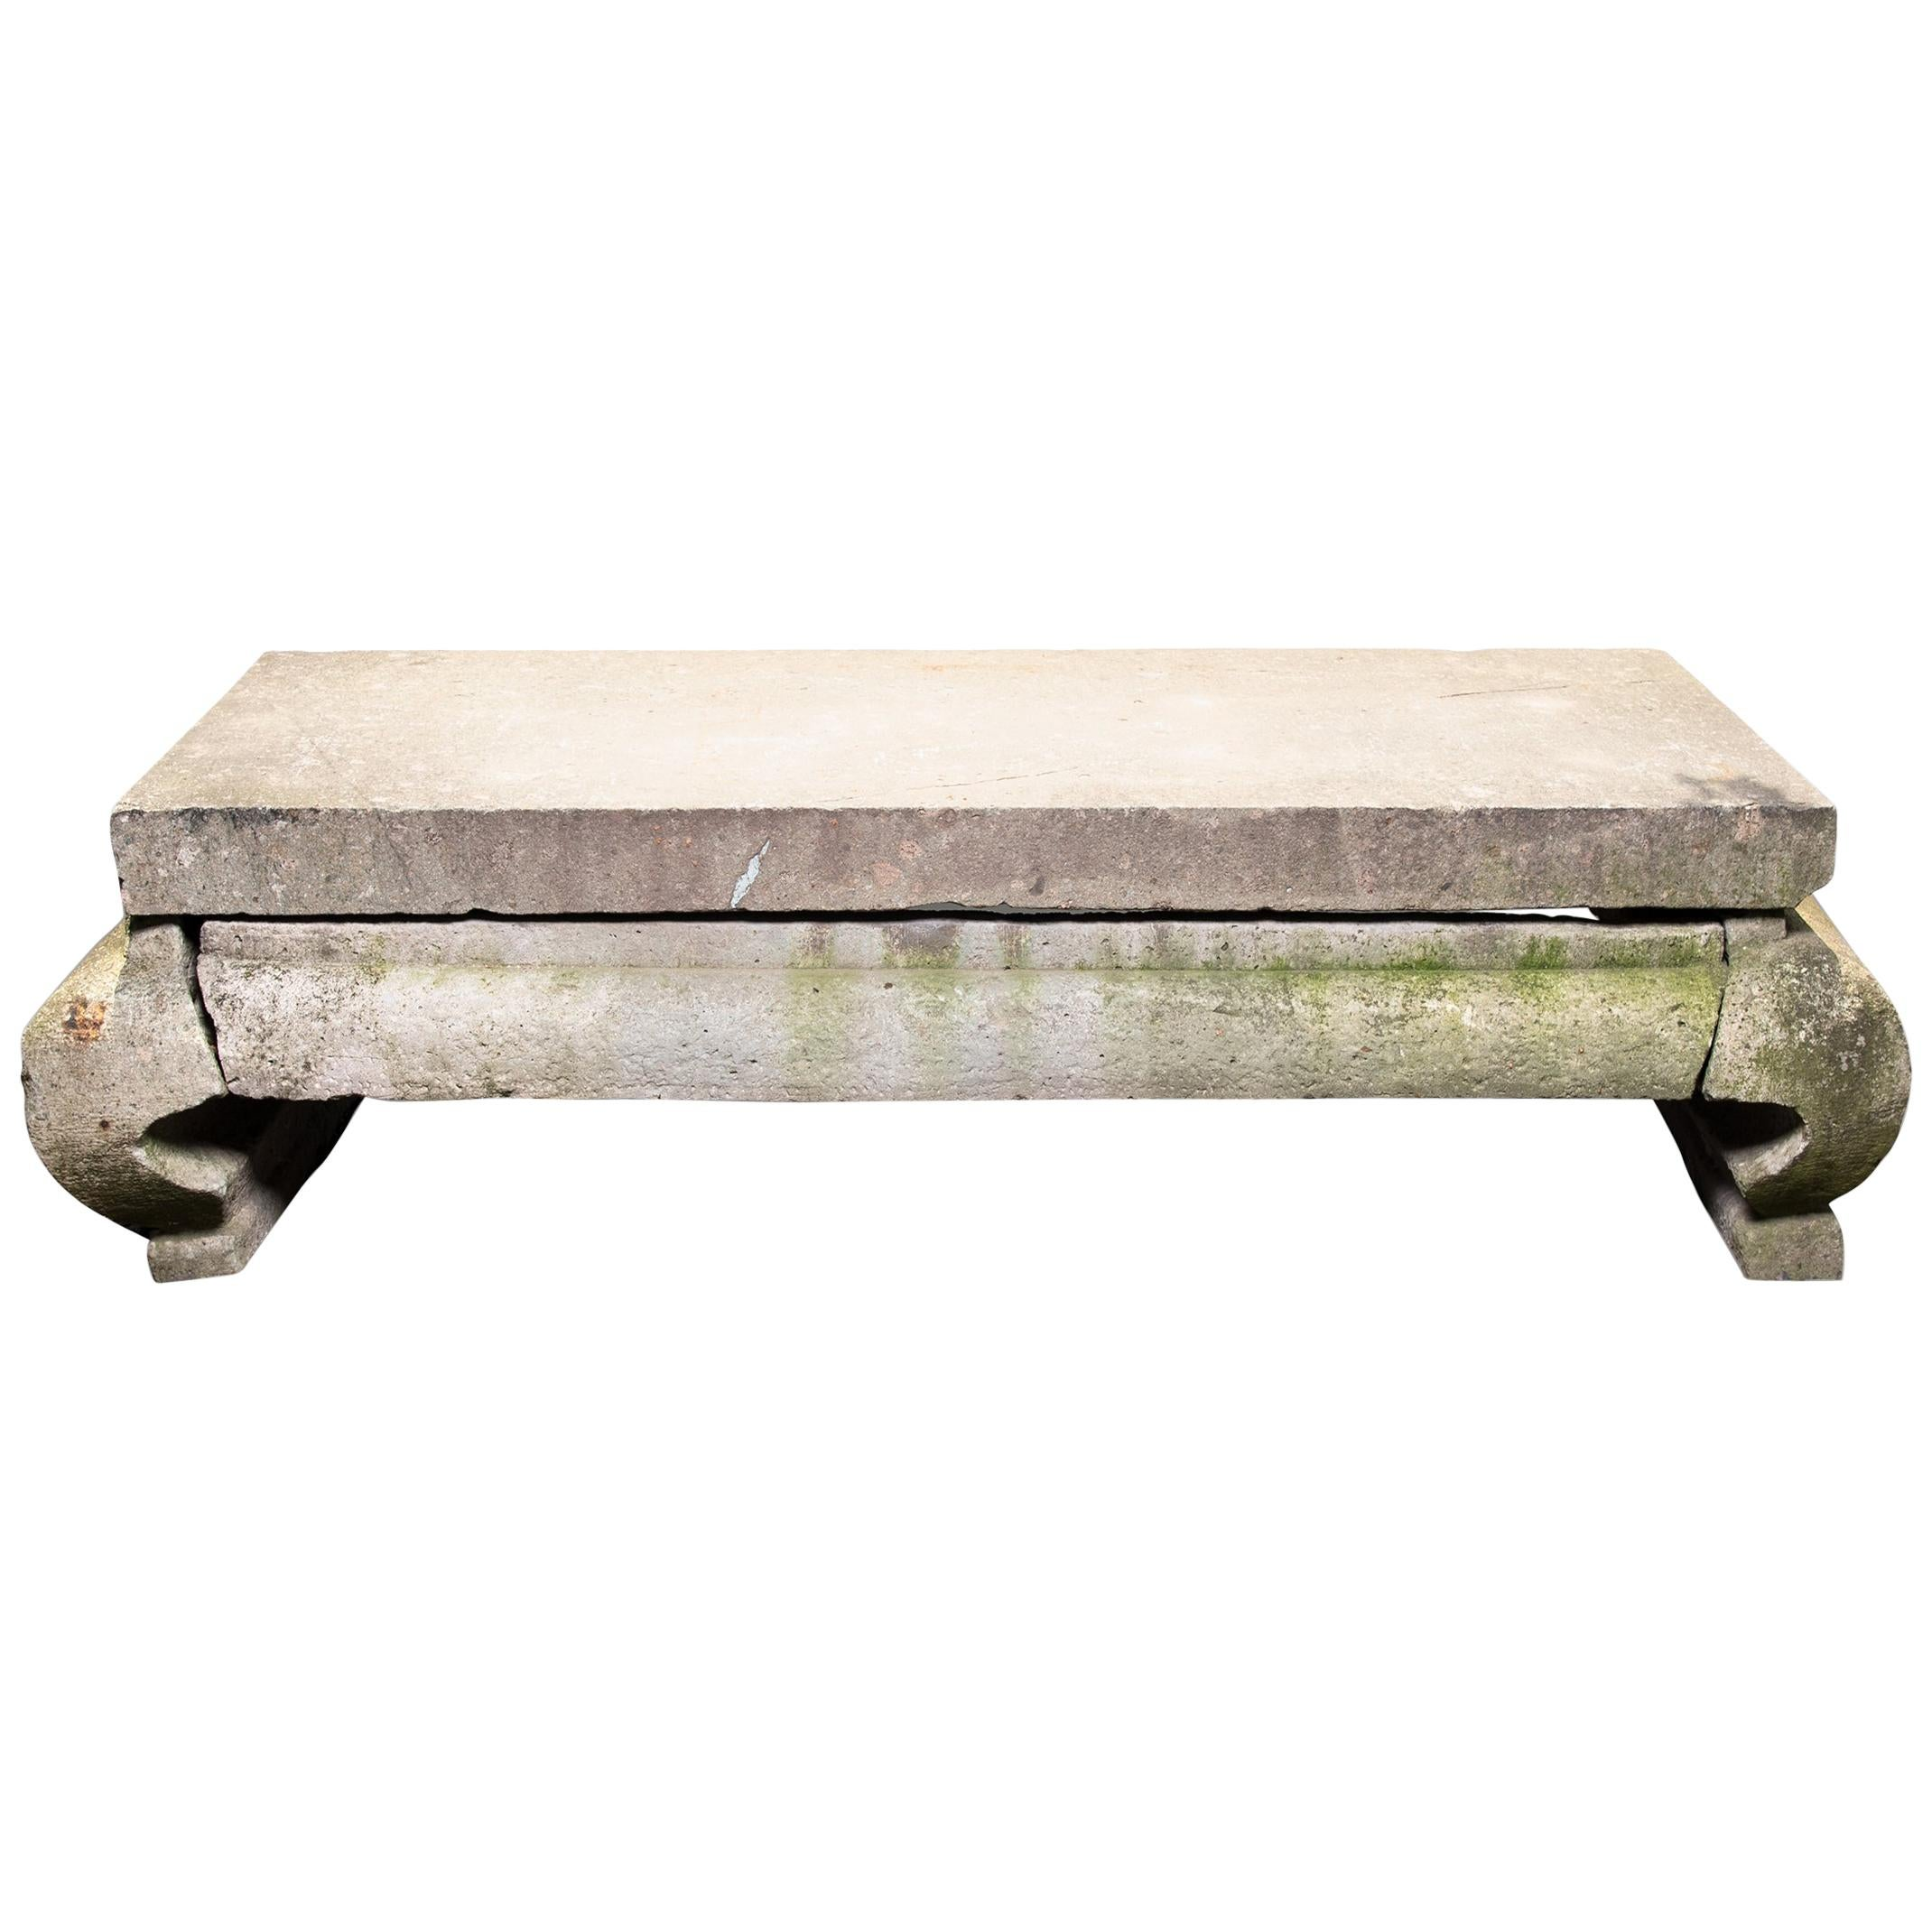 Ordinaire Grand 17th Century Chinese Limestone Table For Sale